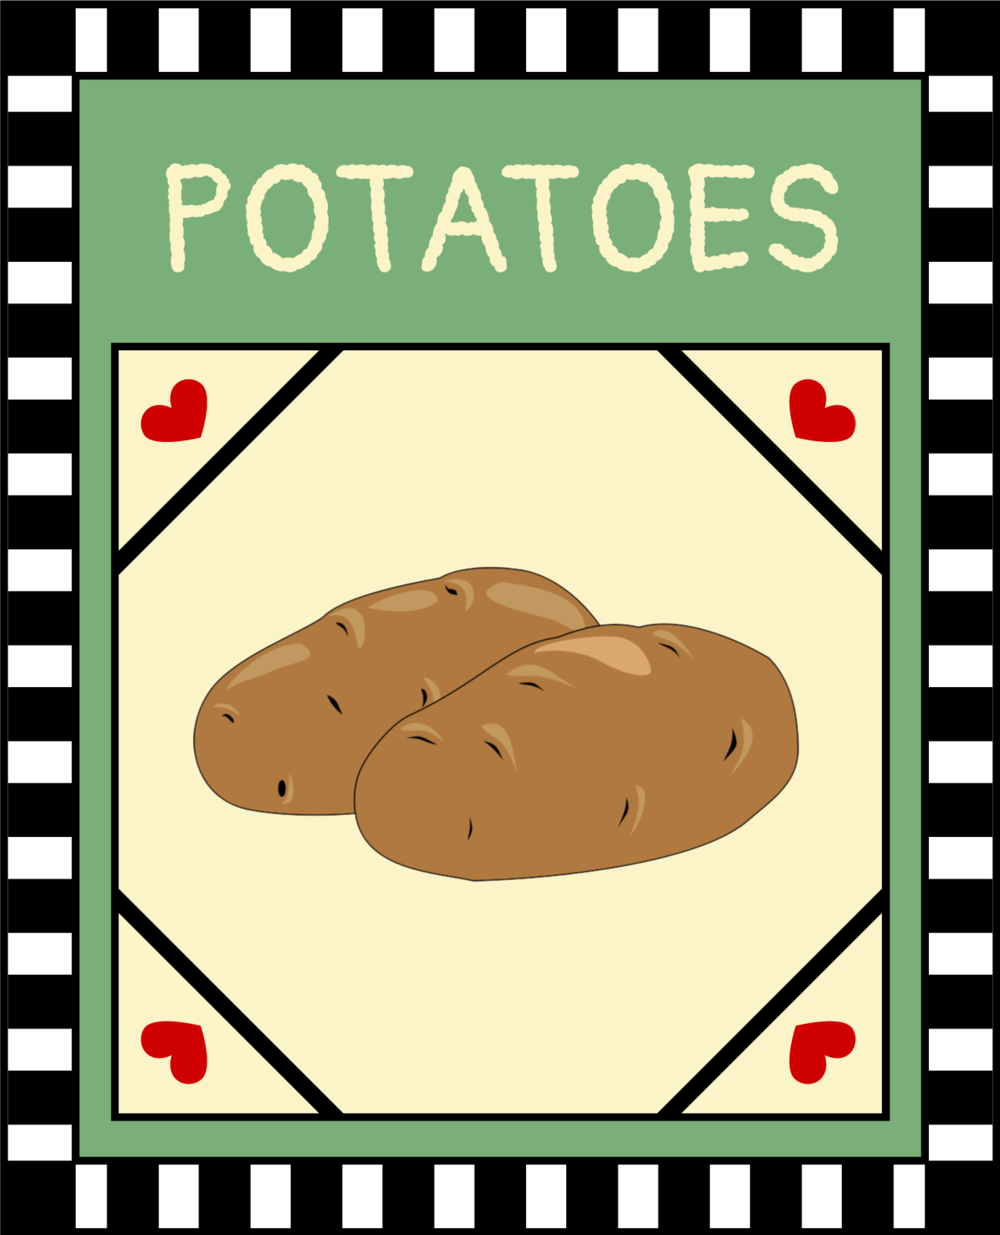 Potatoes / Sweet Potatoes